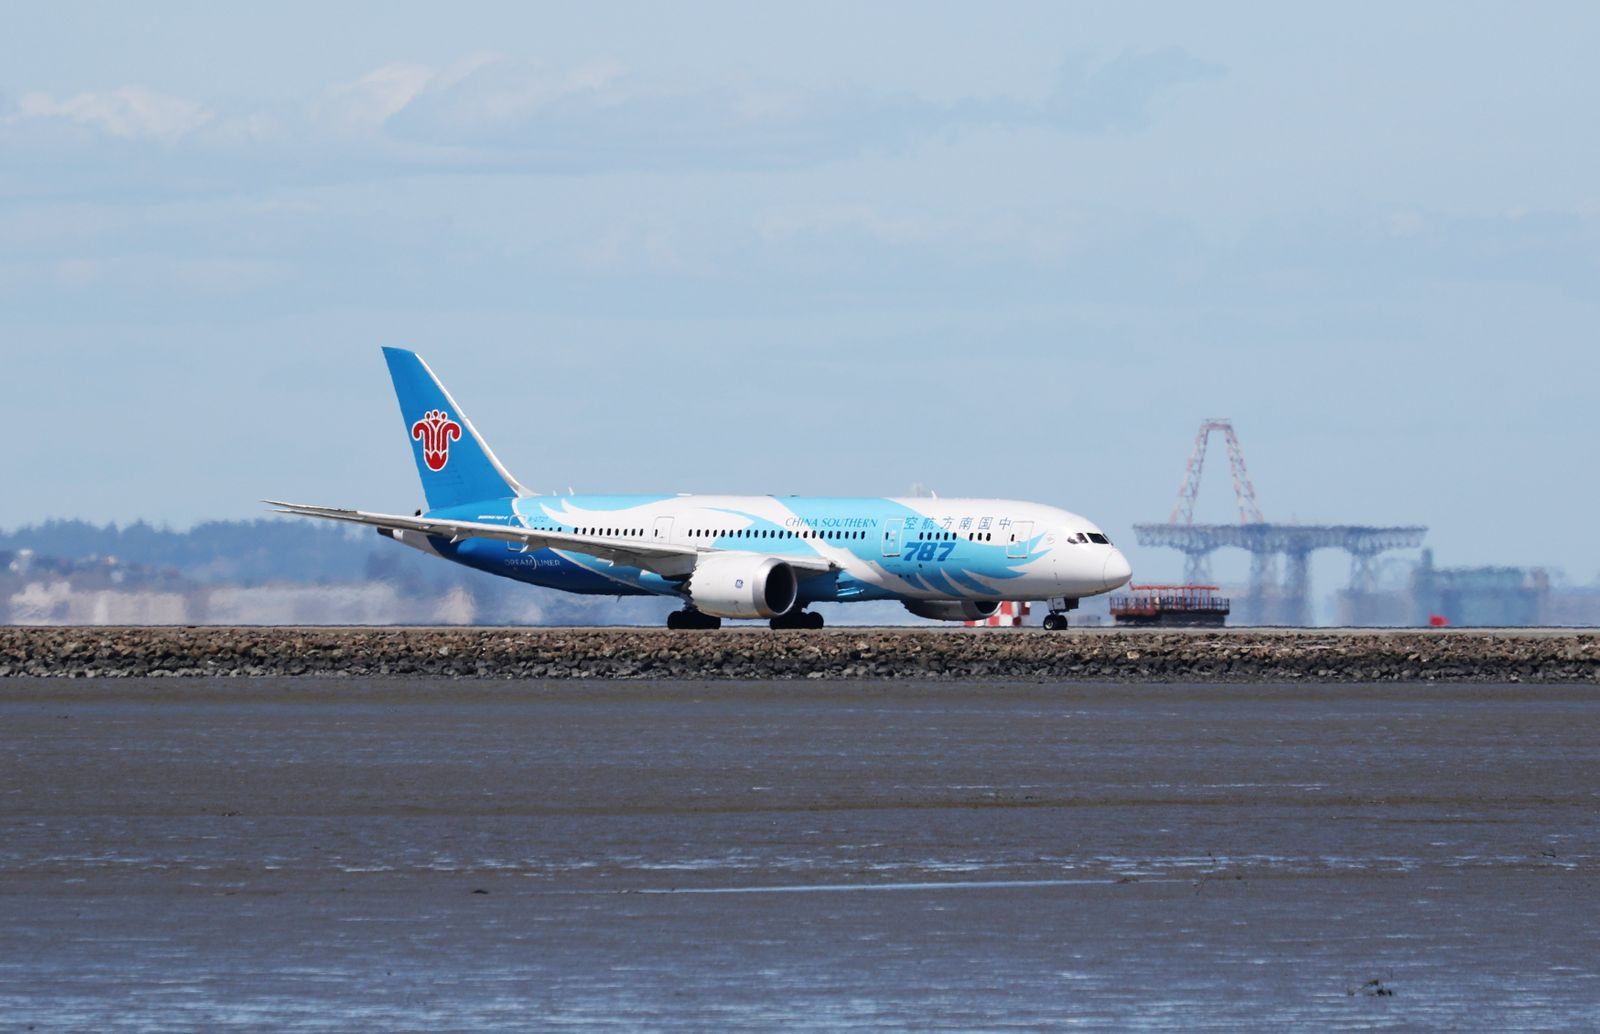 FILE PHOTO: A China Southern Boeing 787, with Tail Number B-2727, taxis at San Francisco International Airport, San Francisco